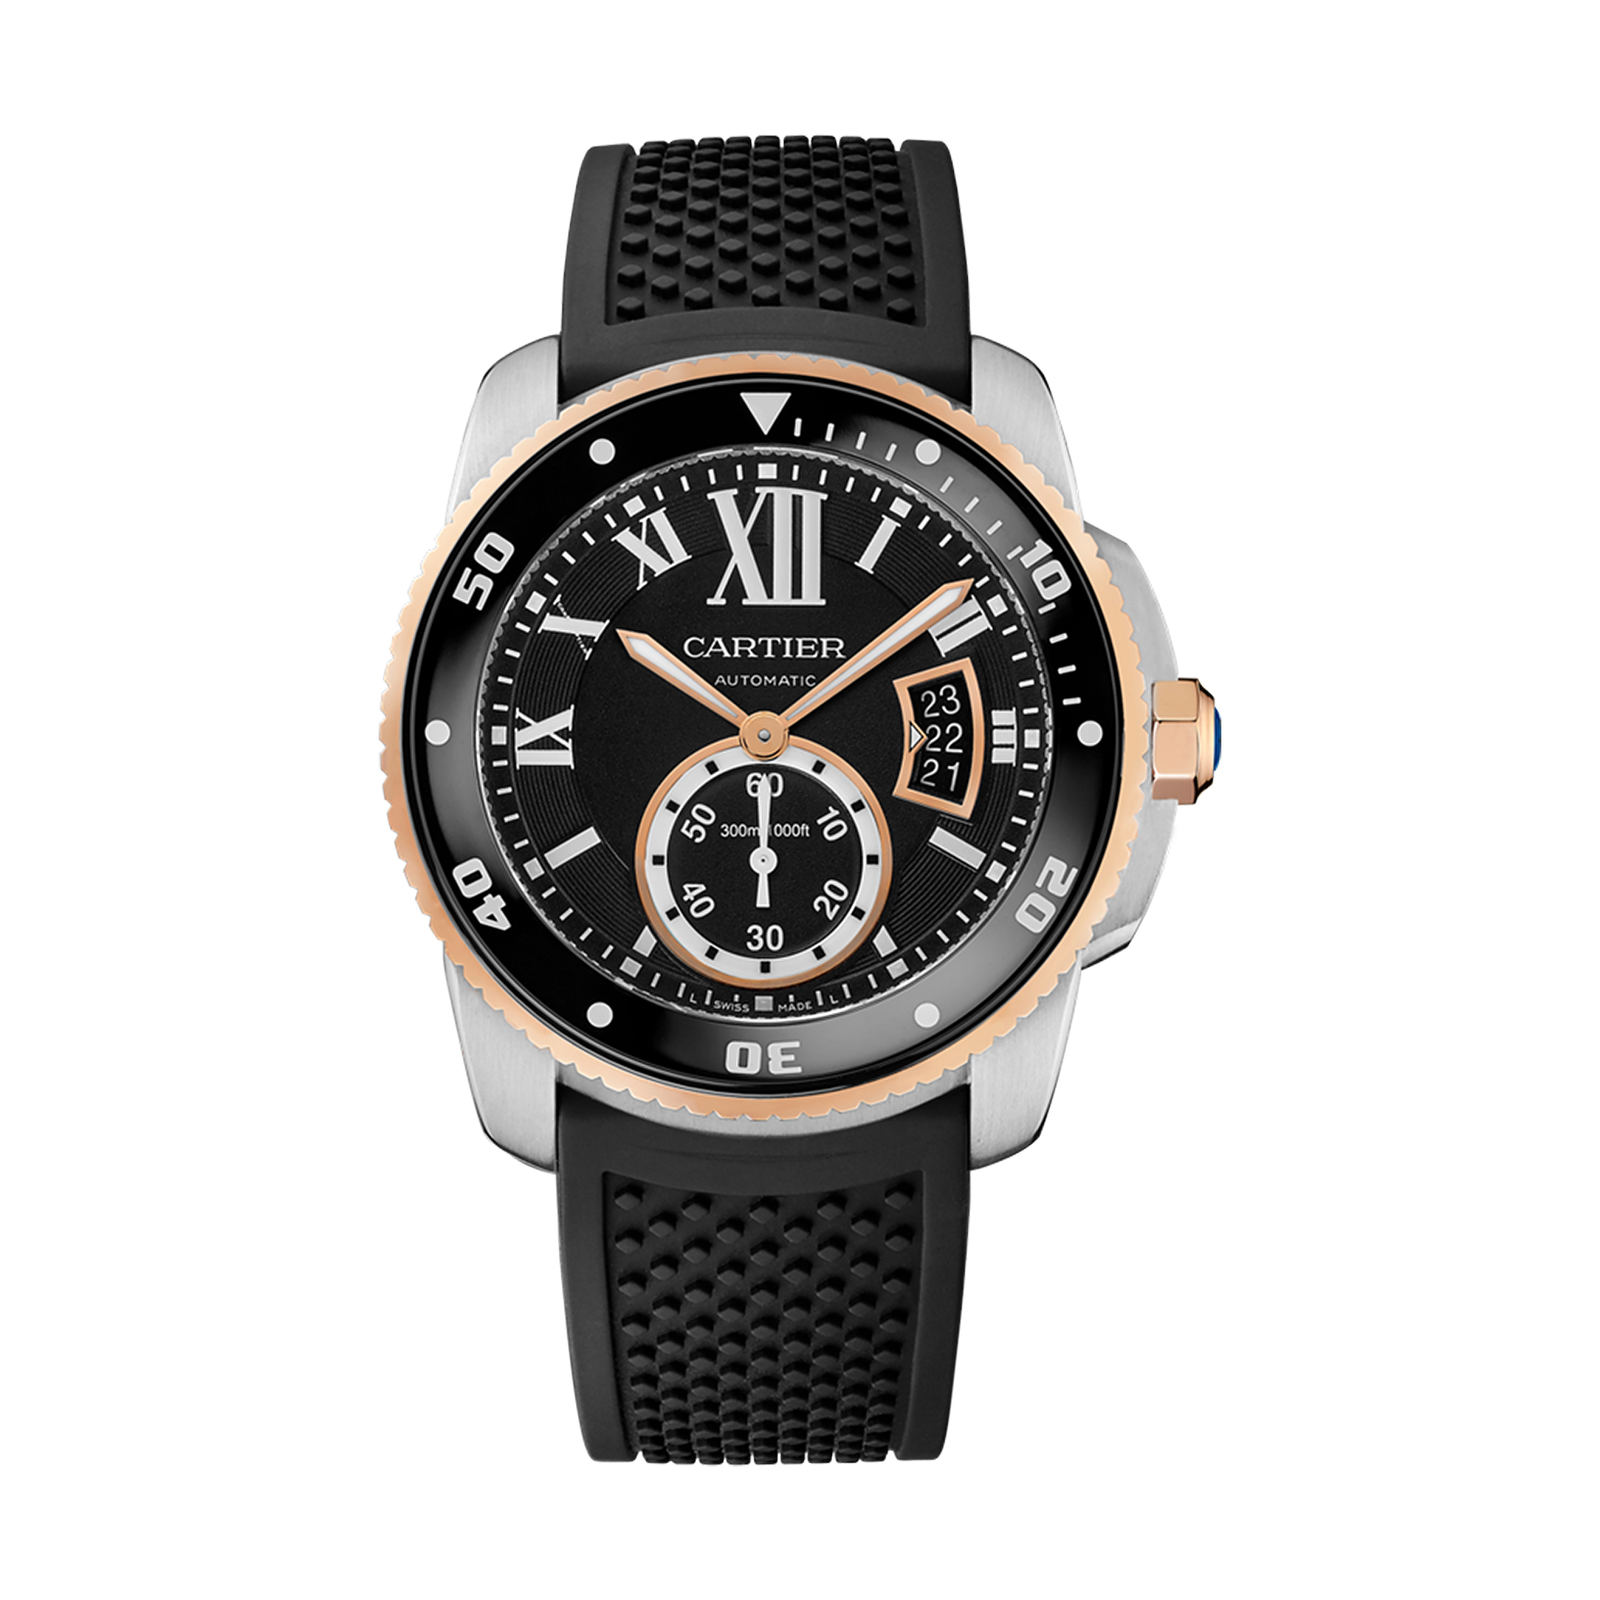 Cartier Calibre de Cartier Diver Watch